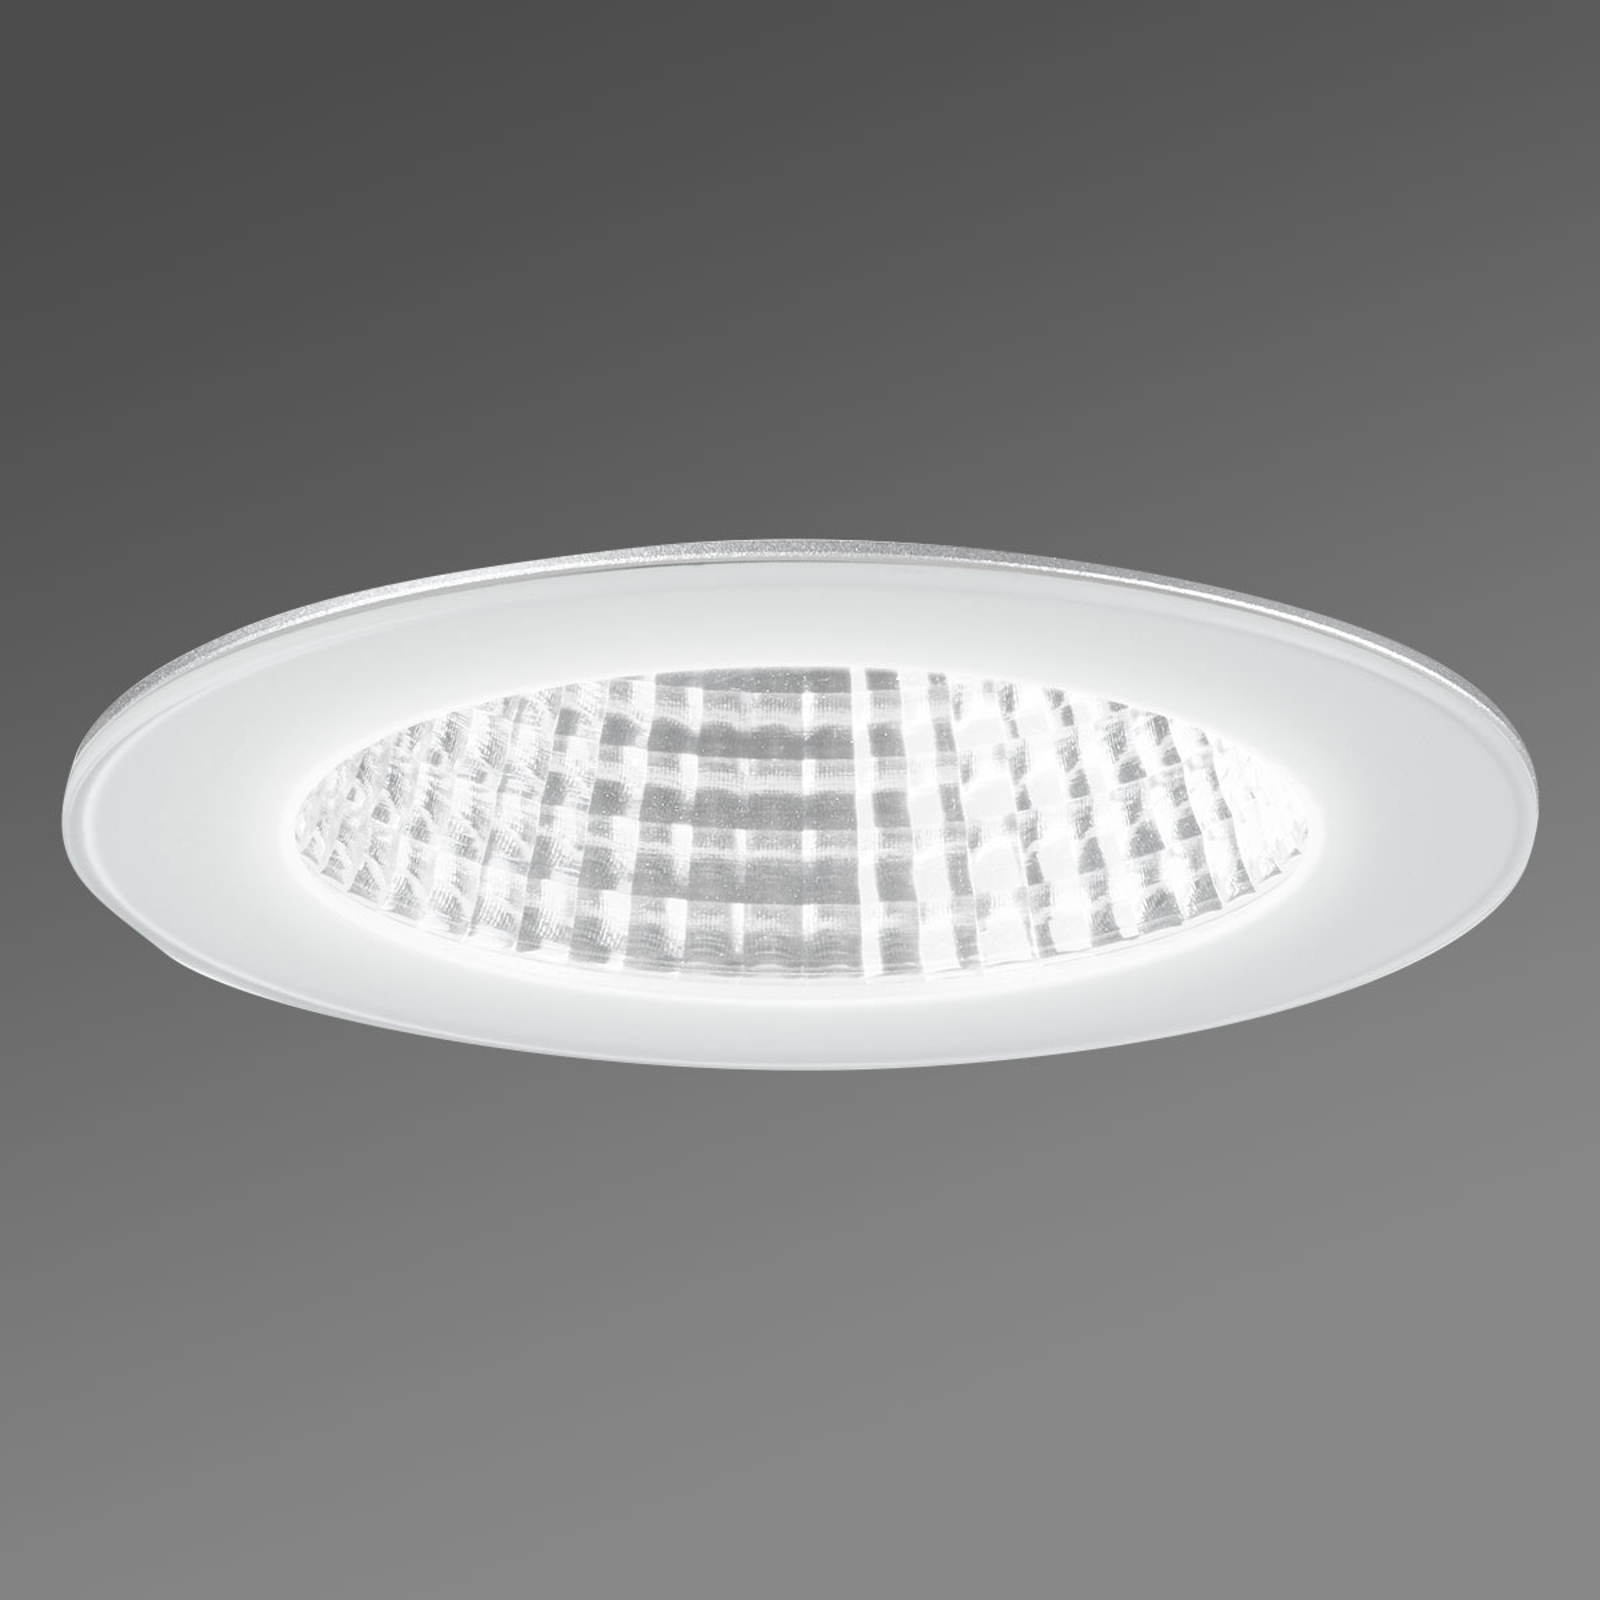 LED inbouwspot IDown 13, spatwaterdicht